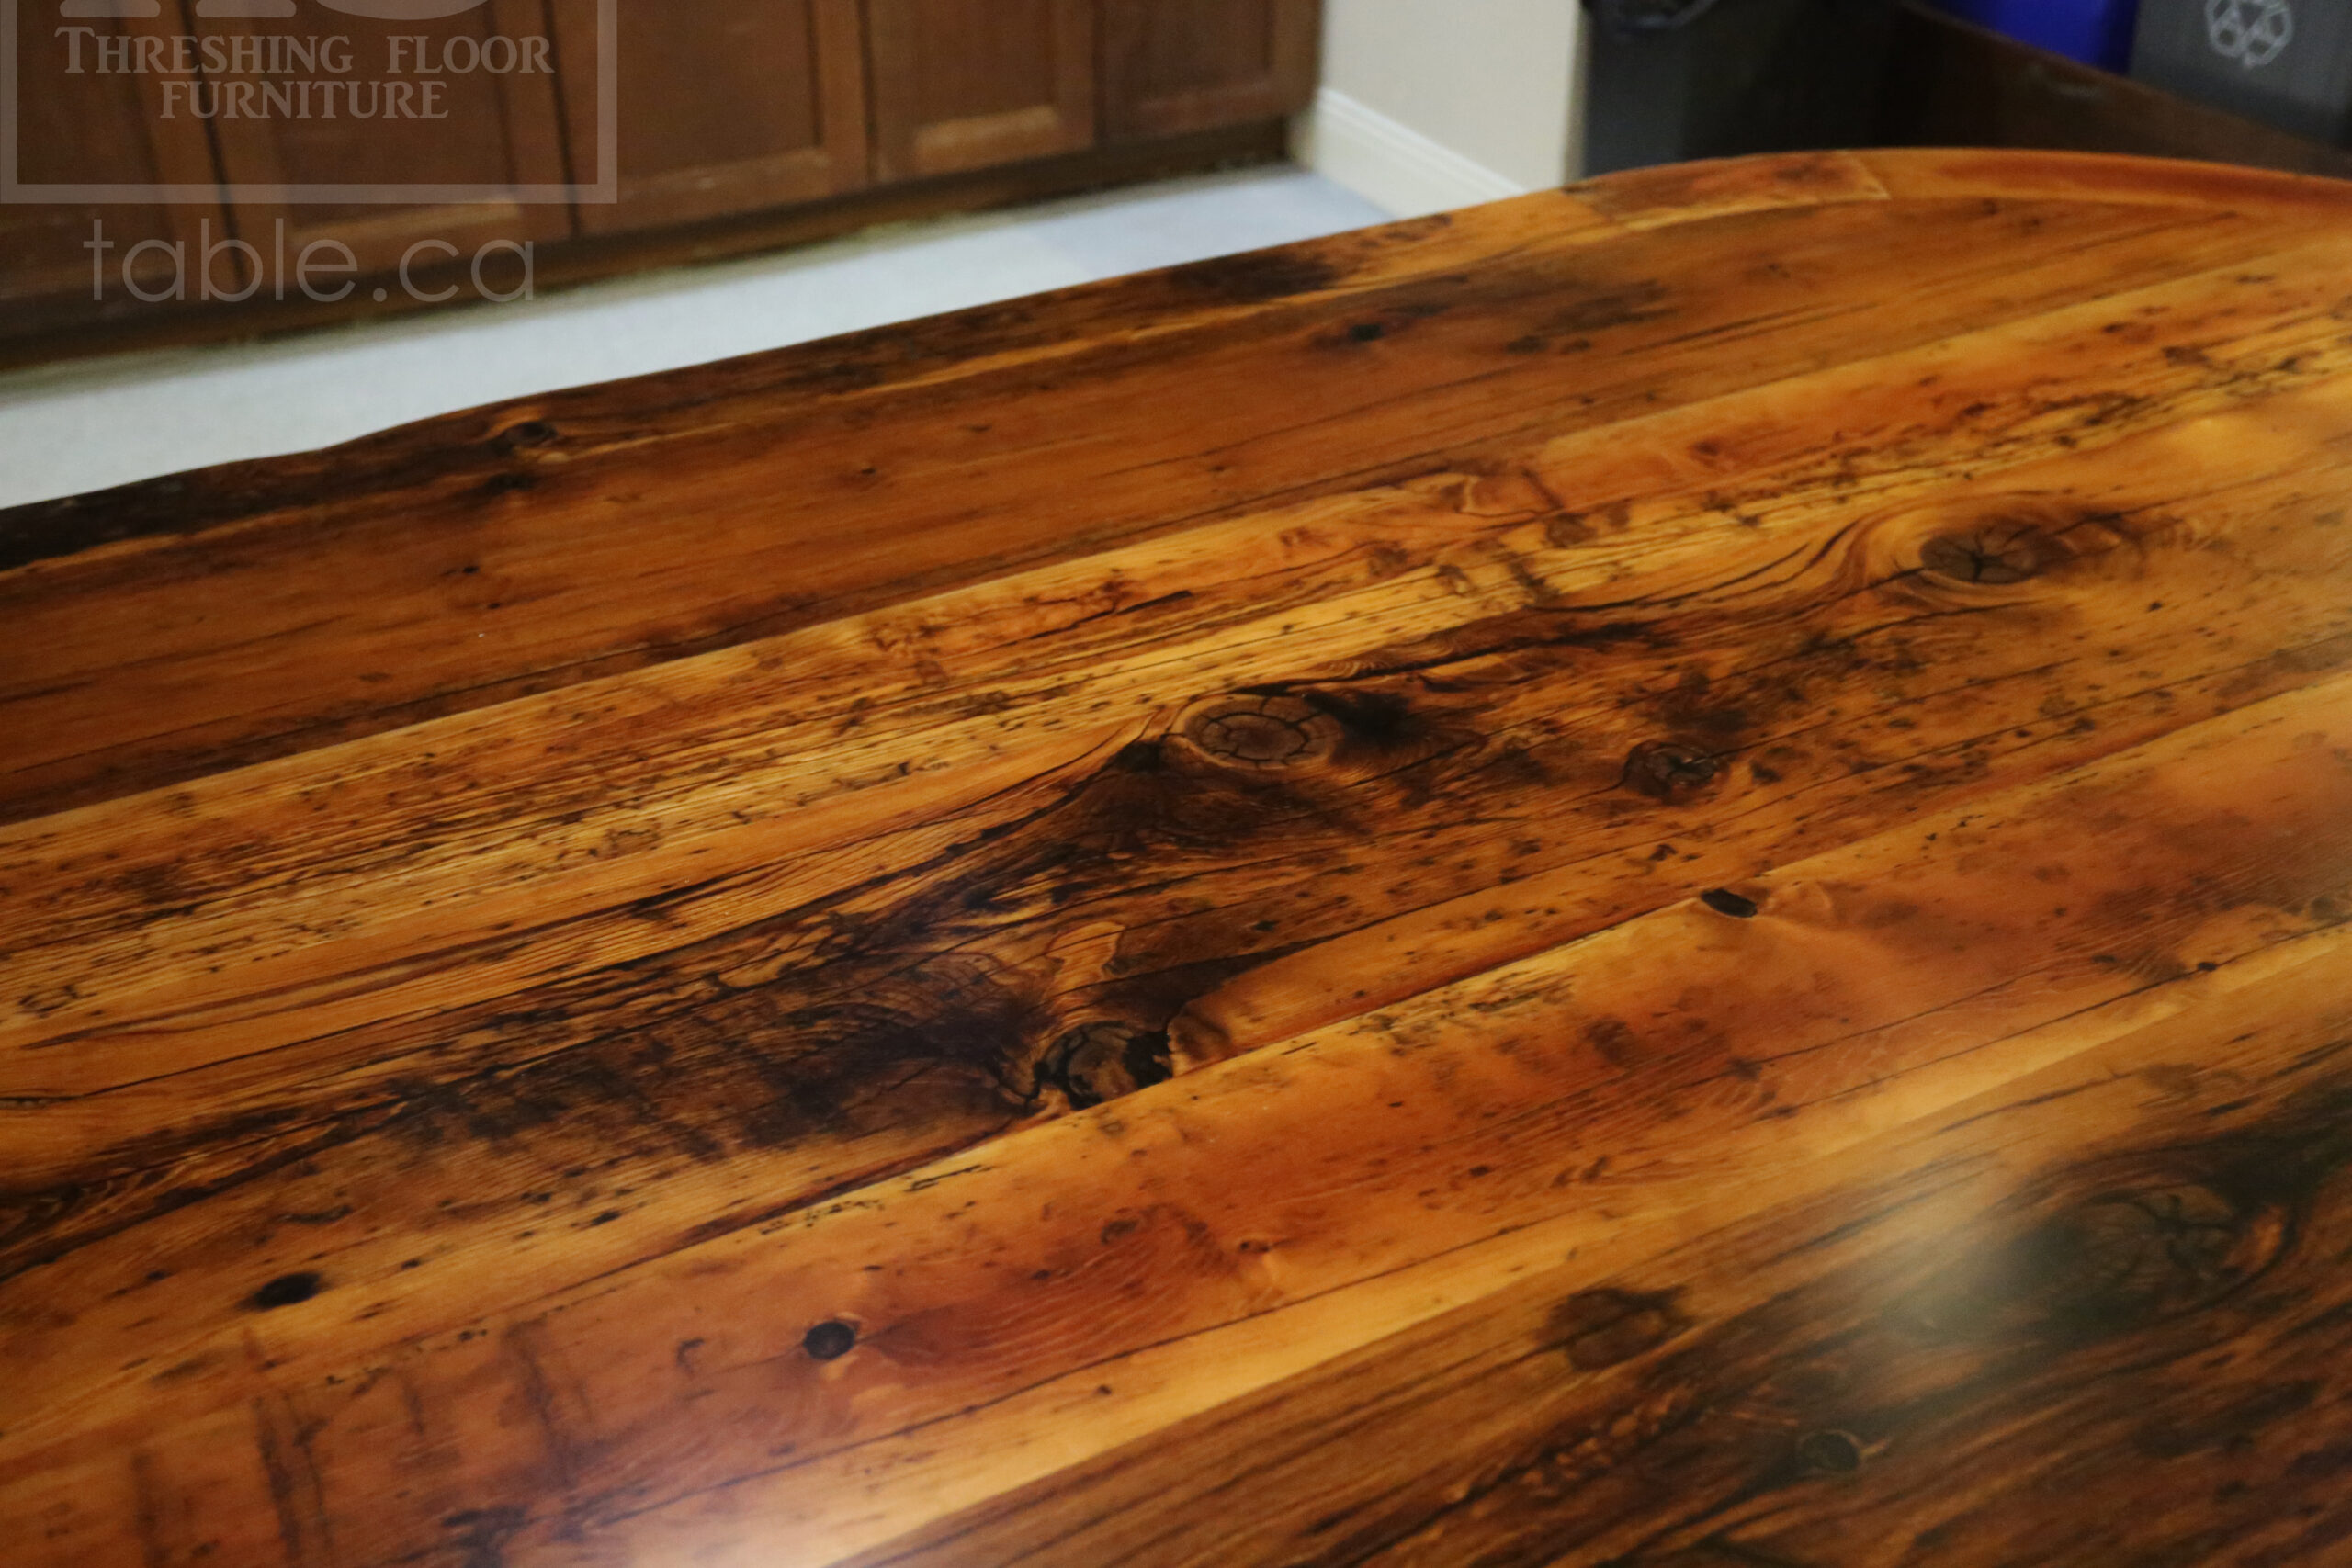 """9' Ontario barnwood Oval table we made for an Port Hope, Ontario community centre - 48"""" wide - Hand-Hewn Beam Pedestals Base - 2"""" Hemlock Threshing Floor Top - Original edges & distressing maintained - Premium epoxy + satin polyurethane finish - www.table.ca"""